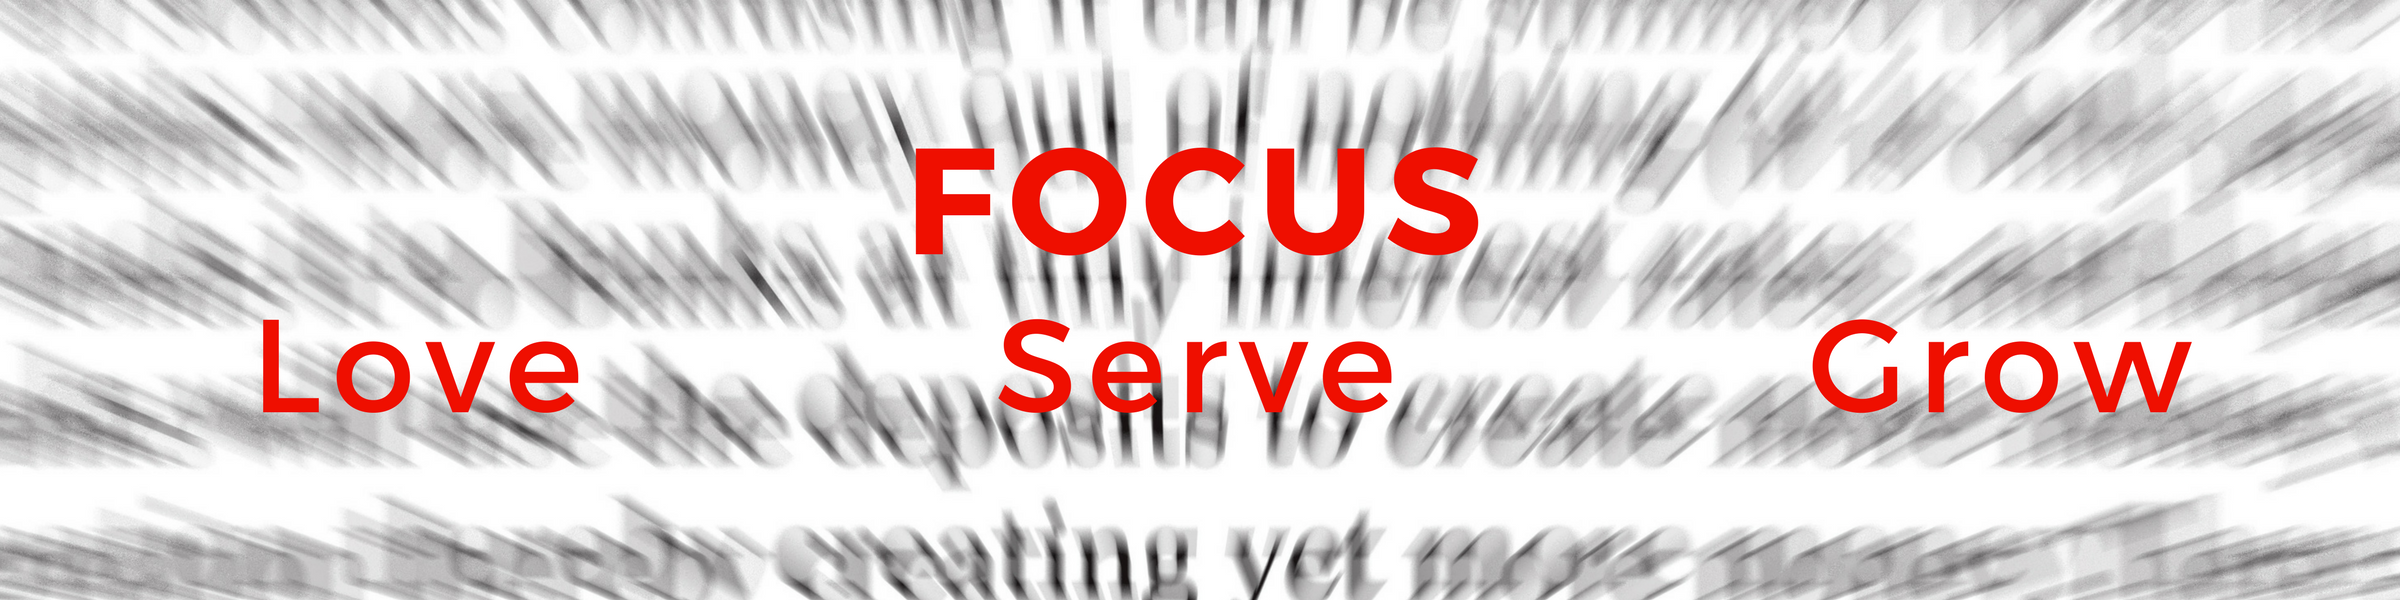 Focus - Serve Pt. 3